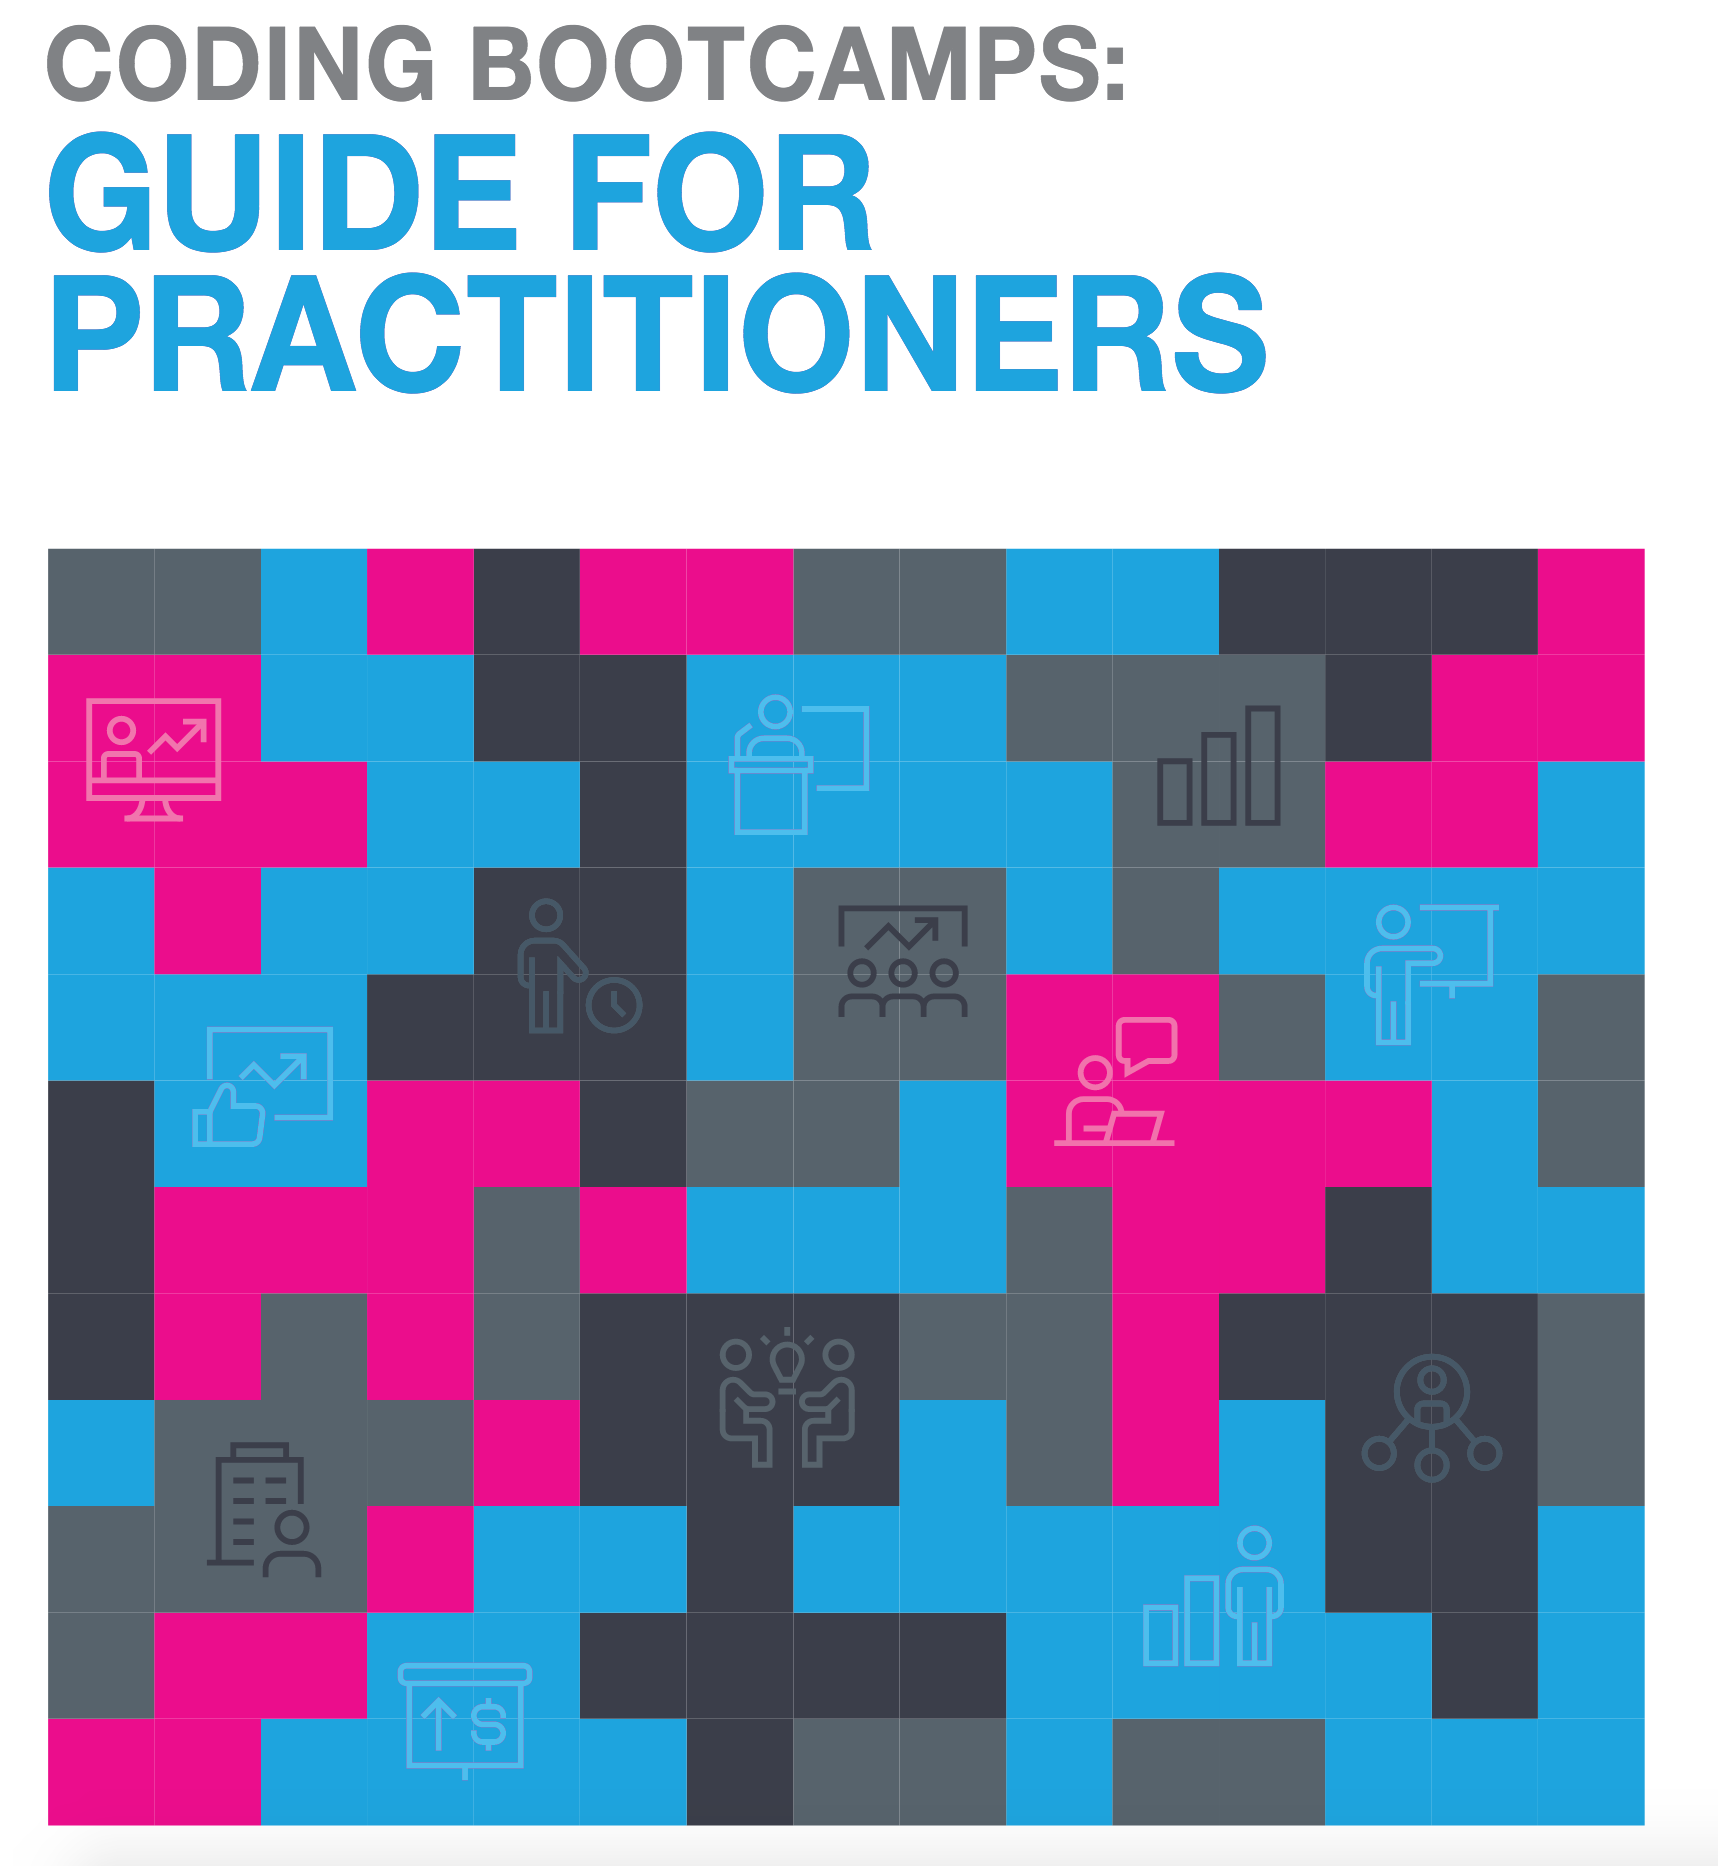 guide for practitioners